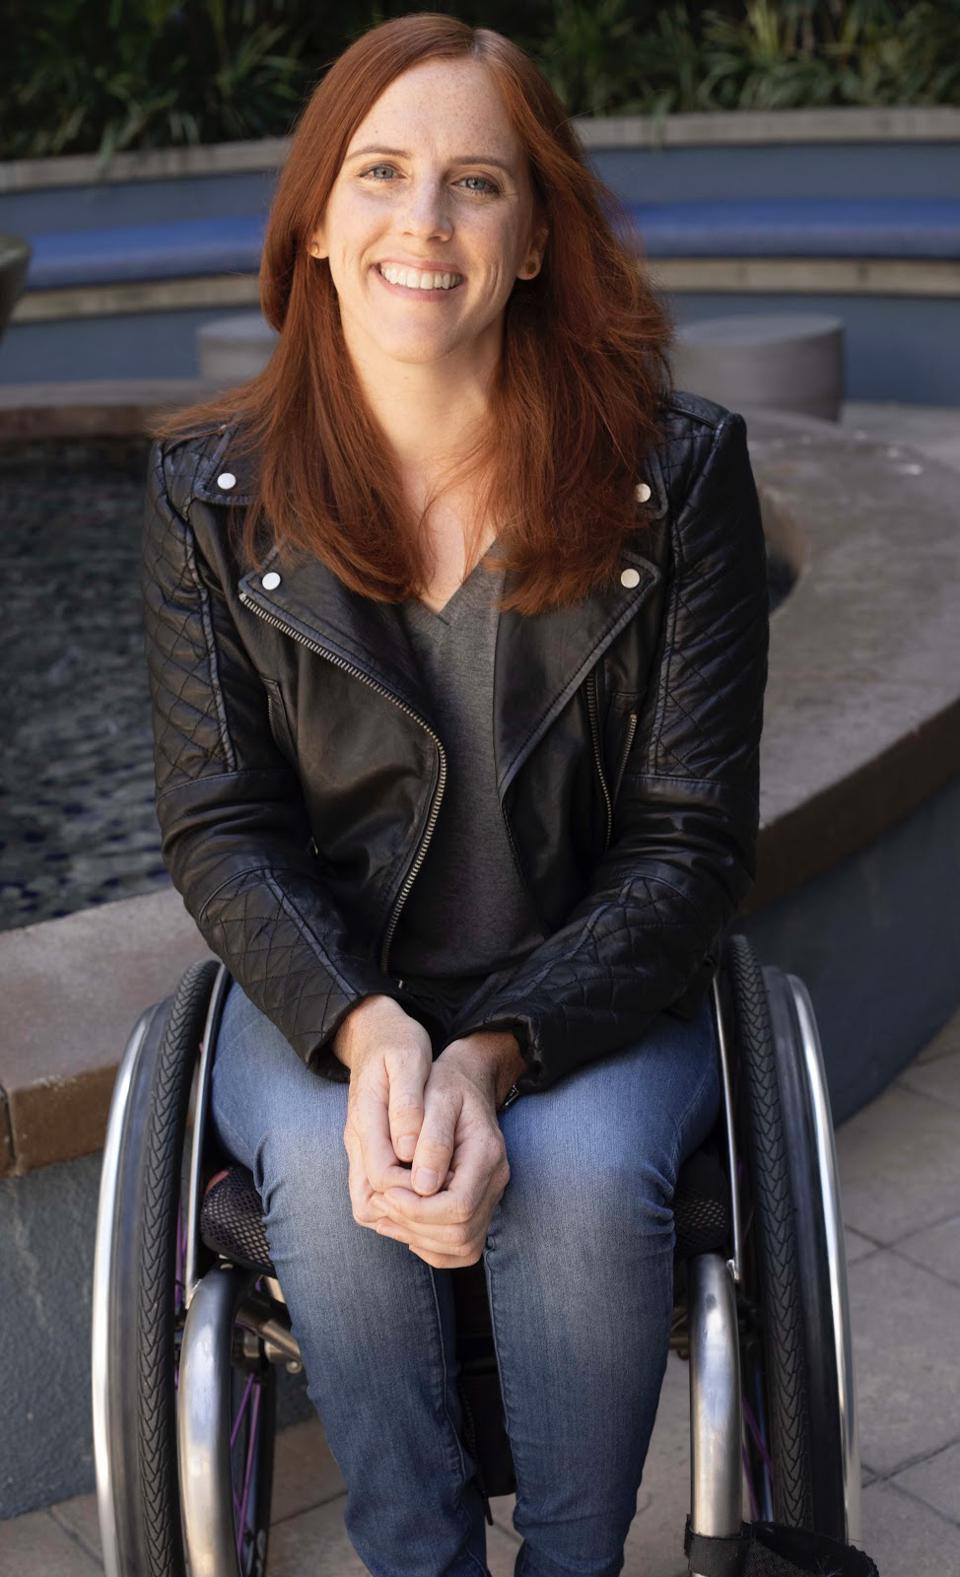 A white woman with red hair smiles while sitting in a wheelchair.